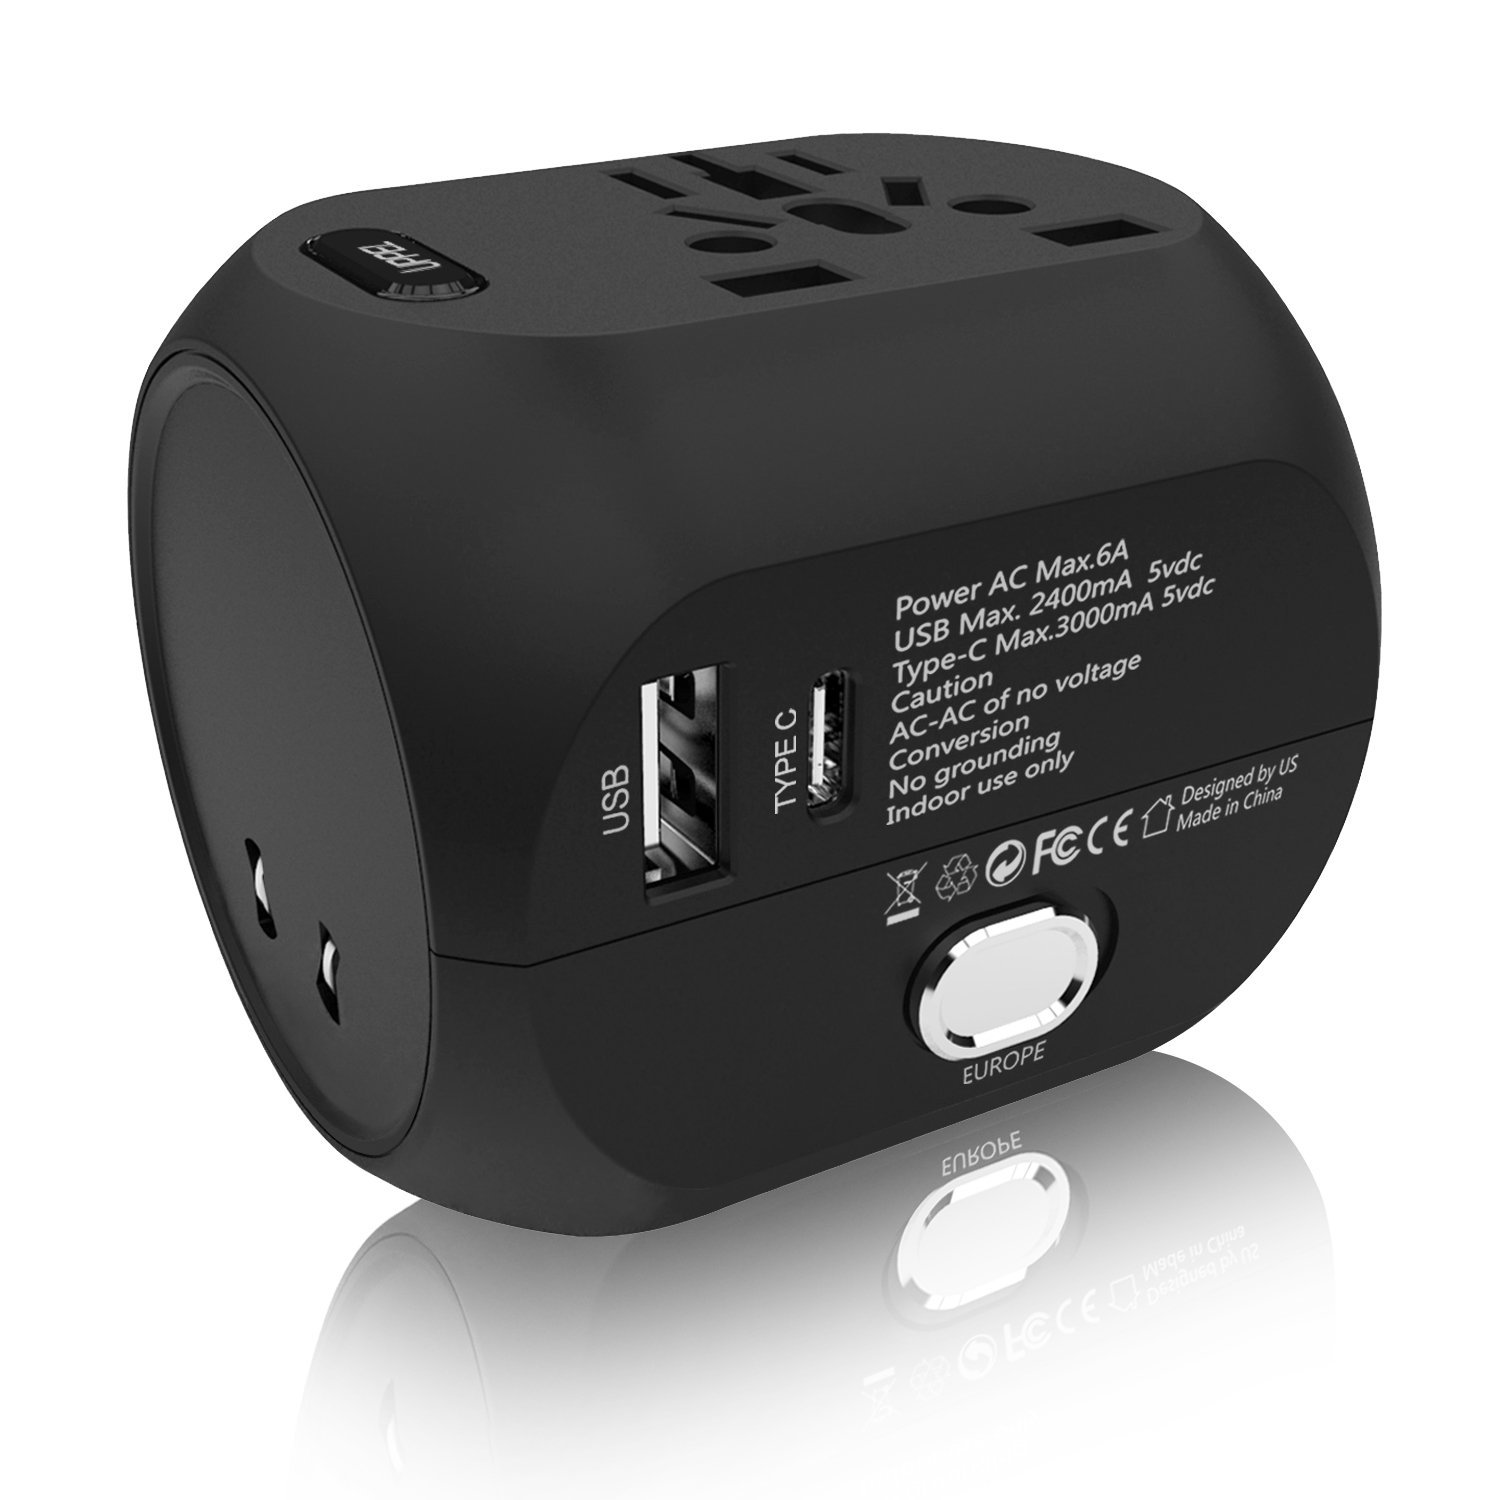 Uppel All In One International Travel Charger Best Offer